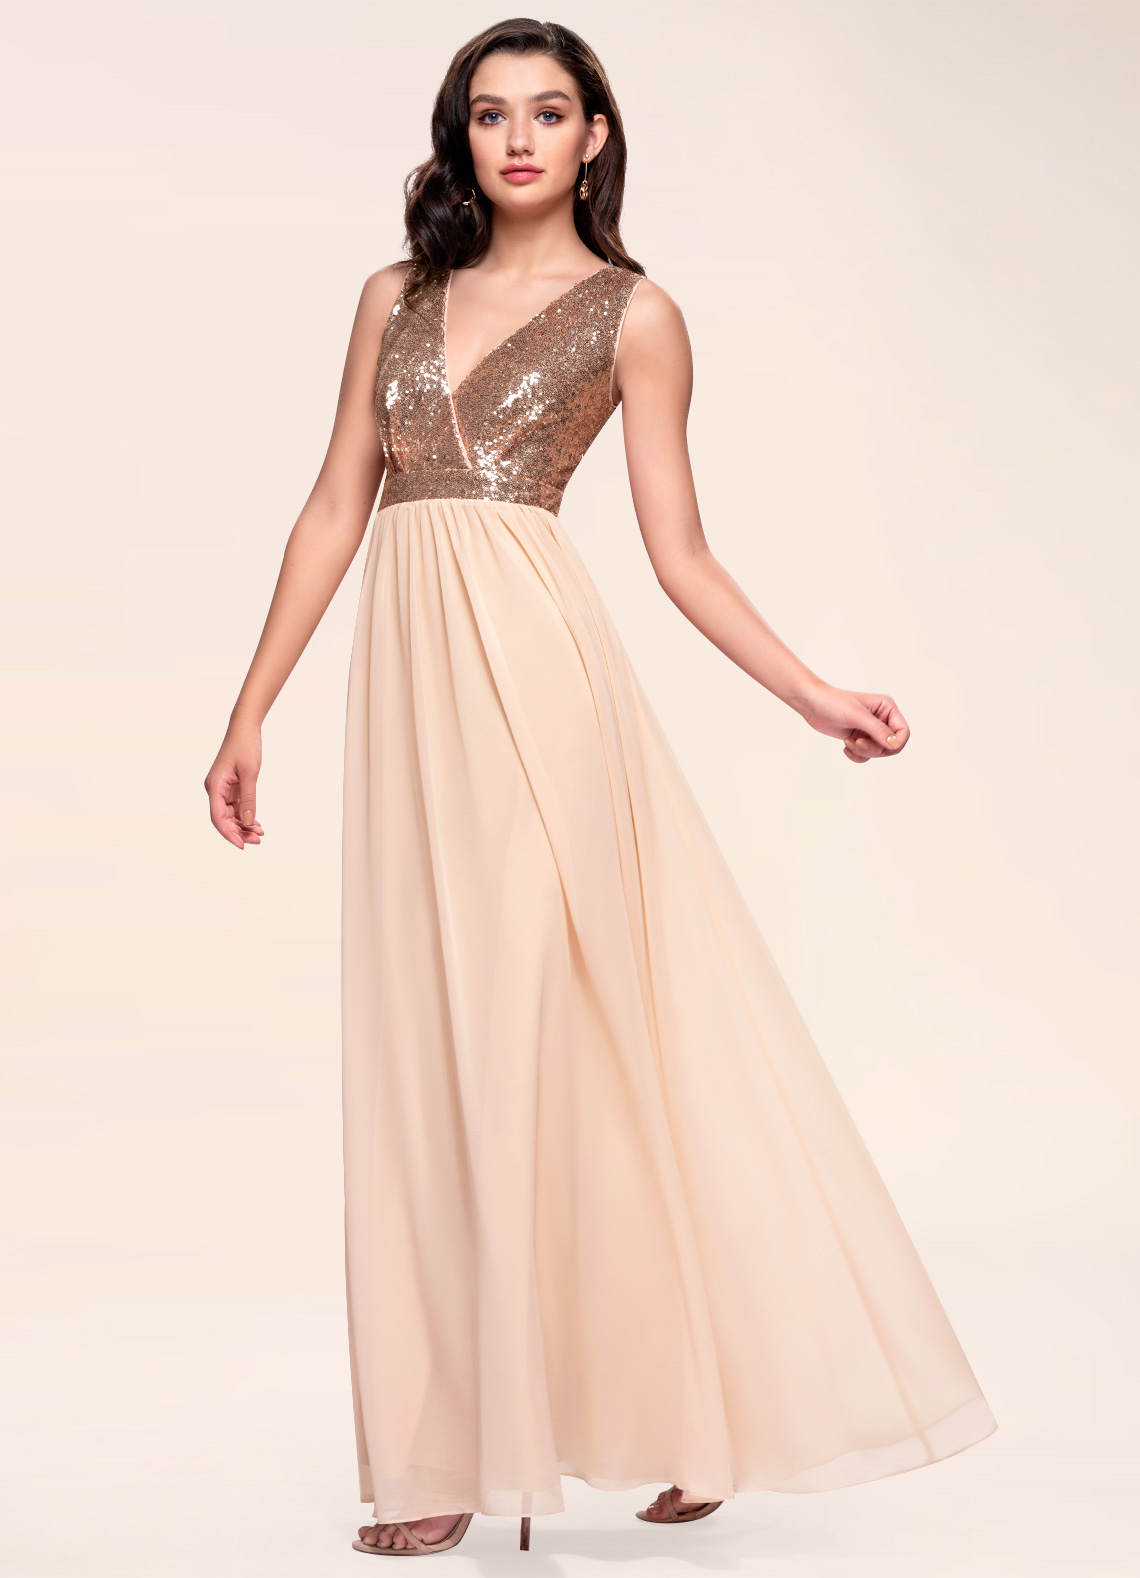 Starlet Rose Gold Sequin Maxi Dress